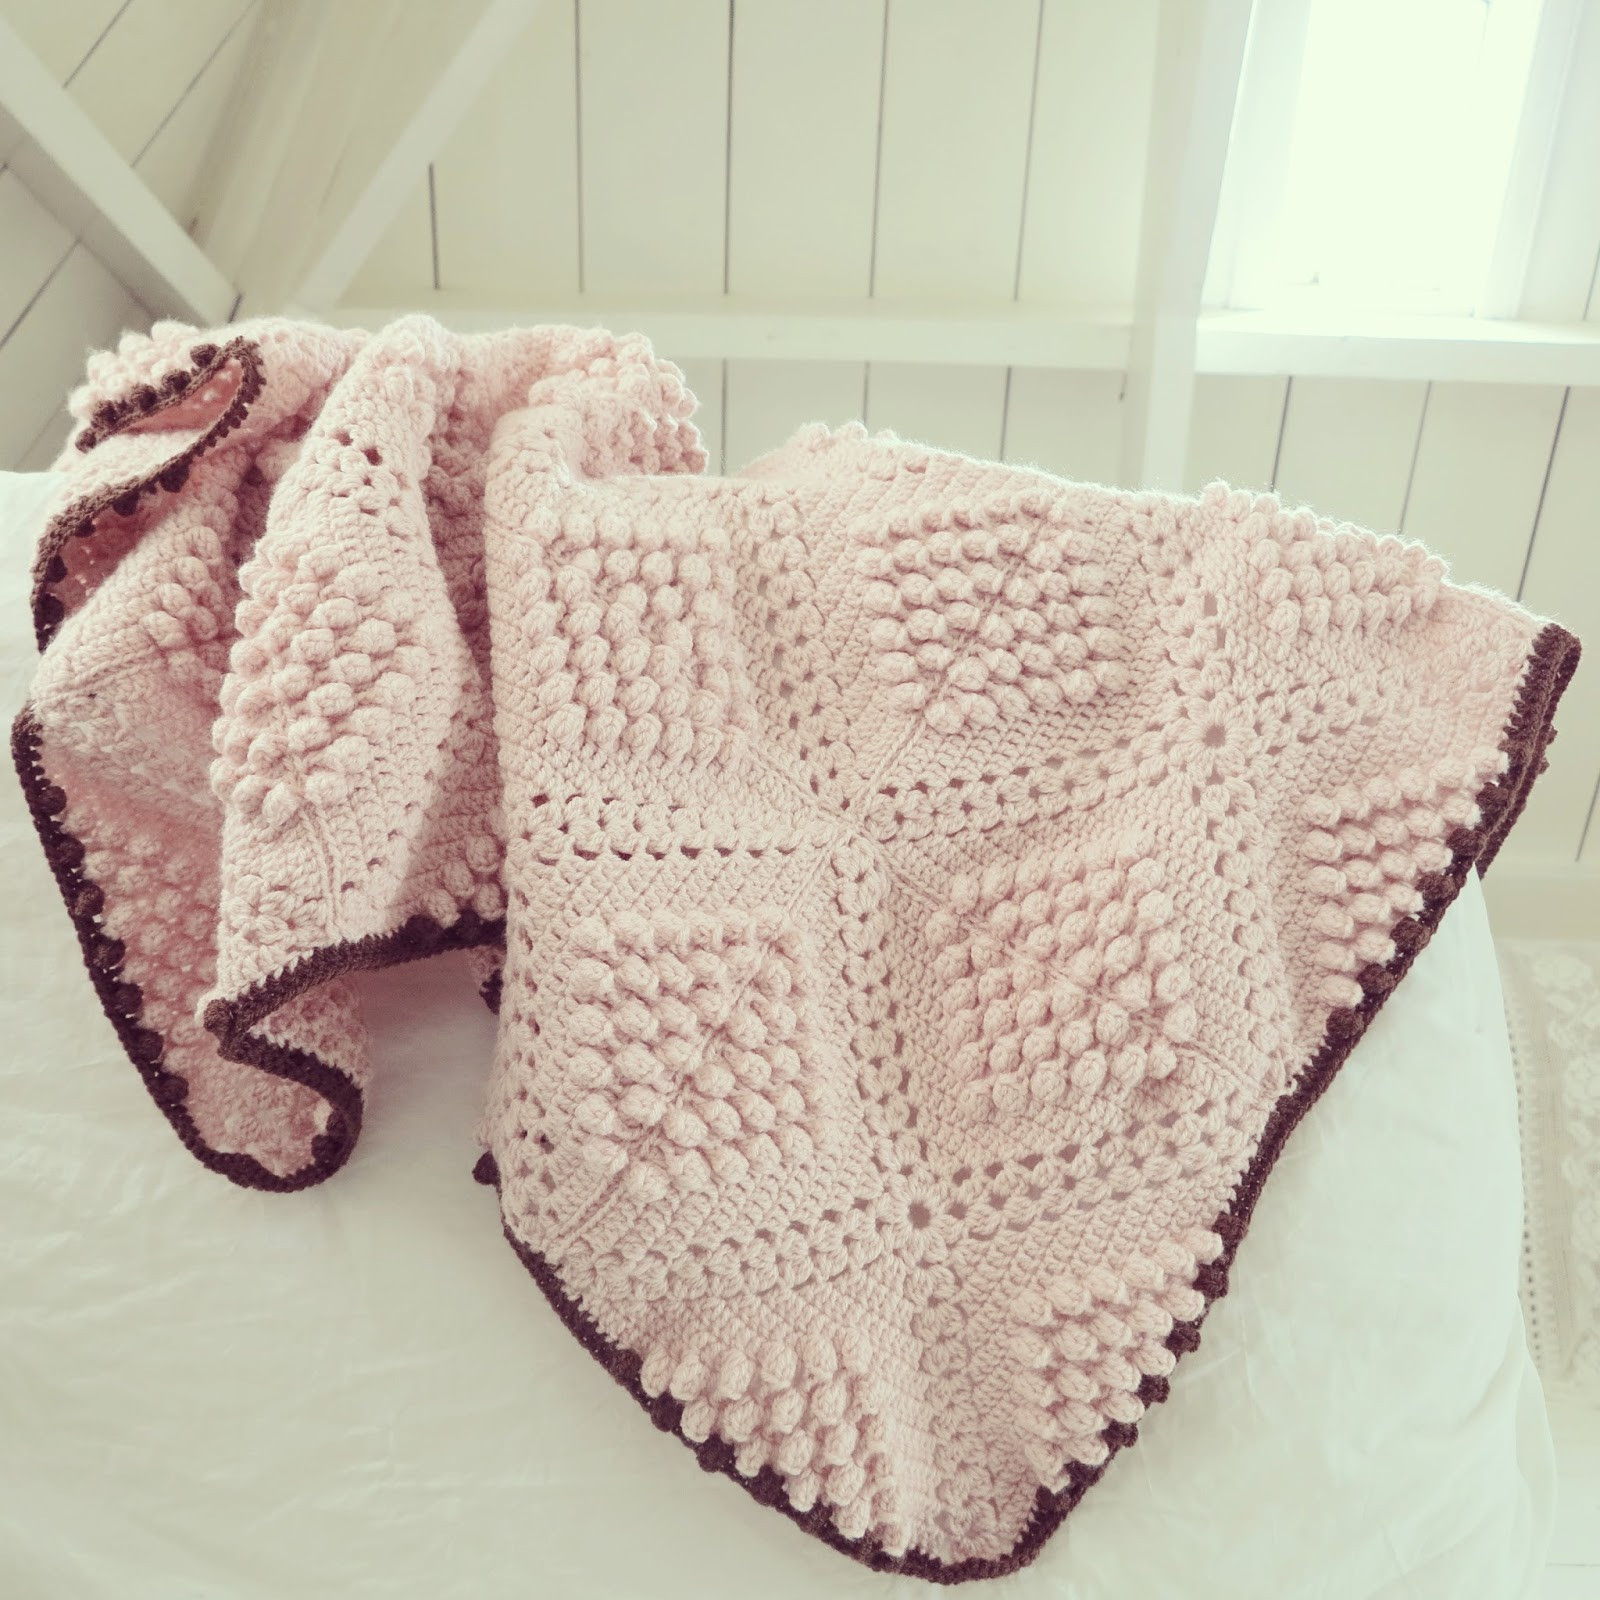 10 free crochet patterns tutorials for baby blankets